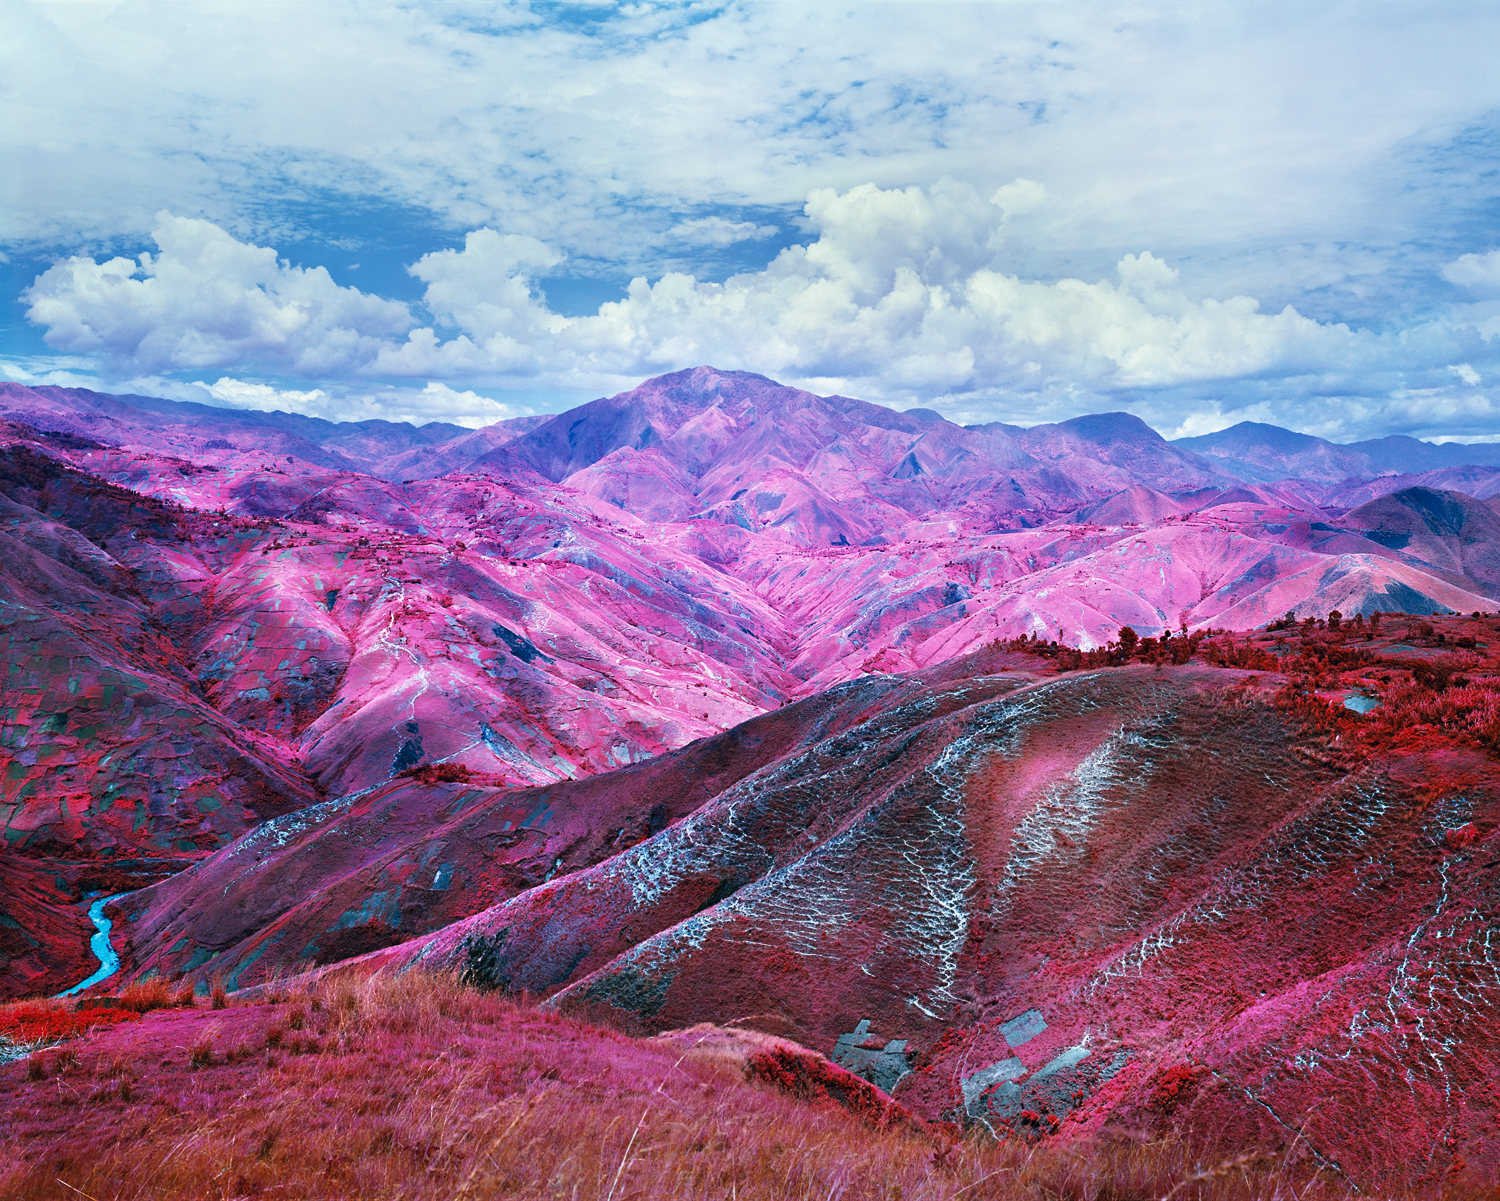 Richard Mosse, Remain in Light, 2015. Digital c-print, 40 x 50 inches. © Richard Mosse. Courtesy of the artist and Jack Shainman Gallery, New York